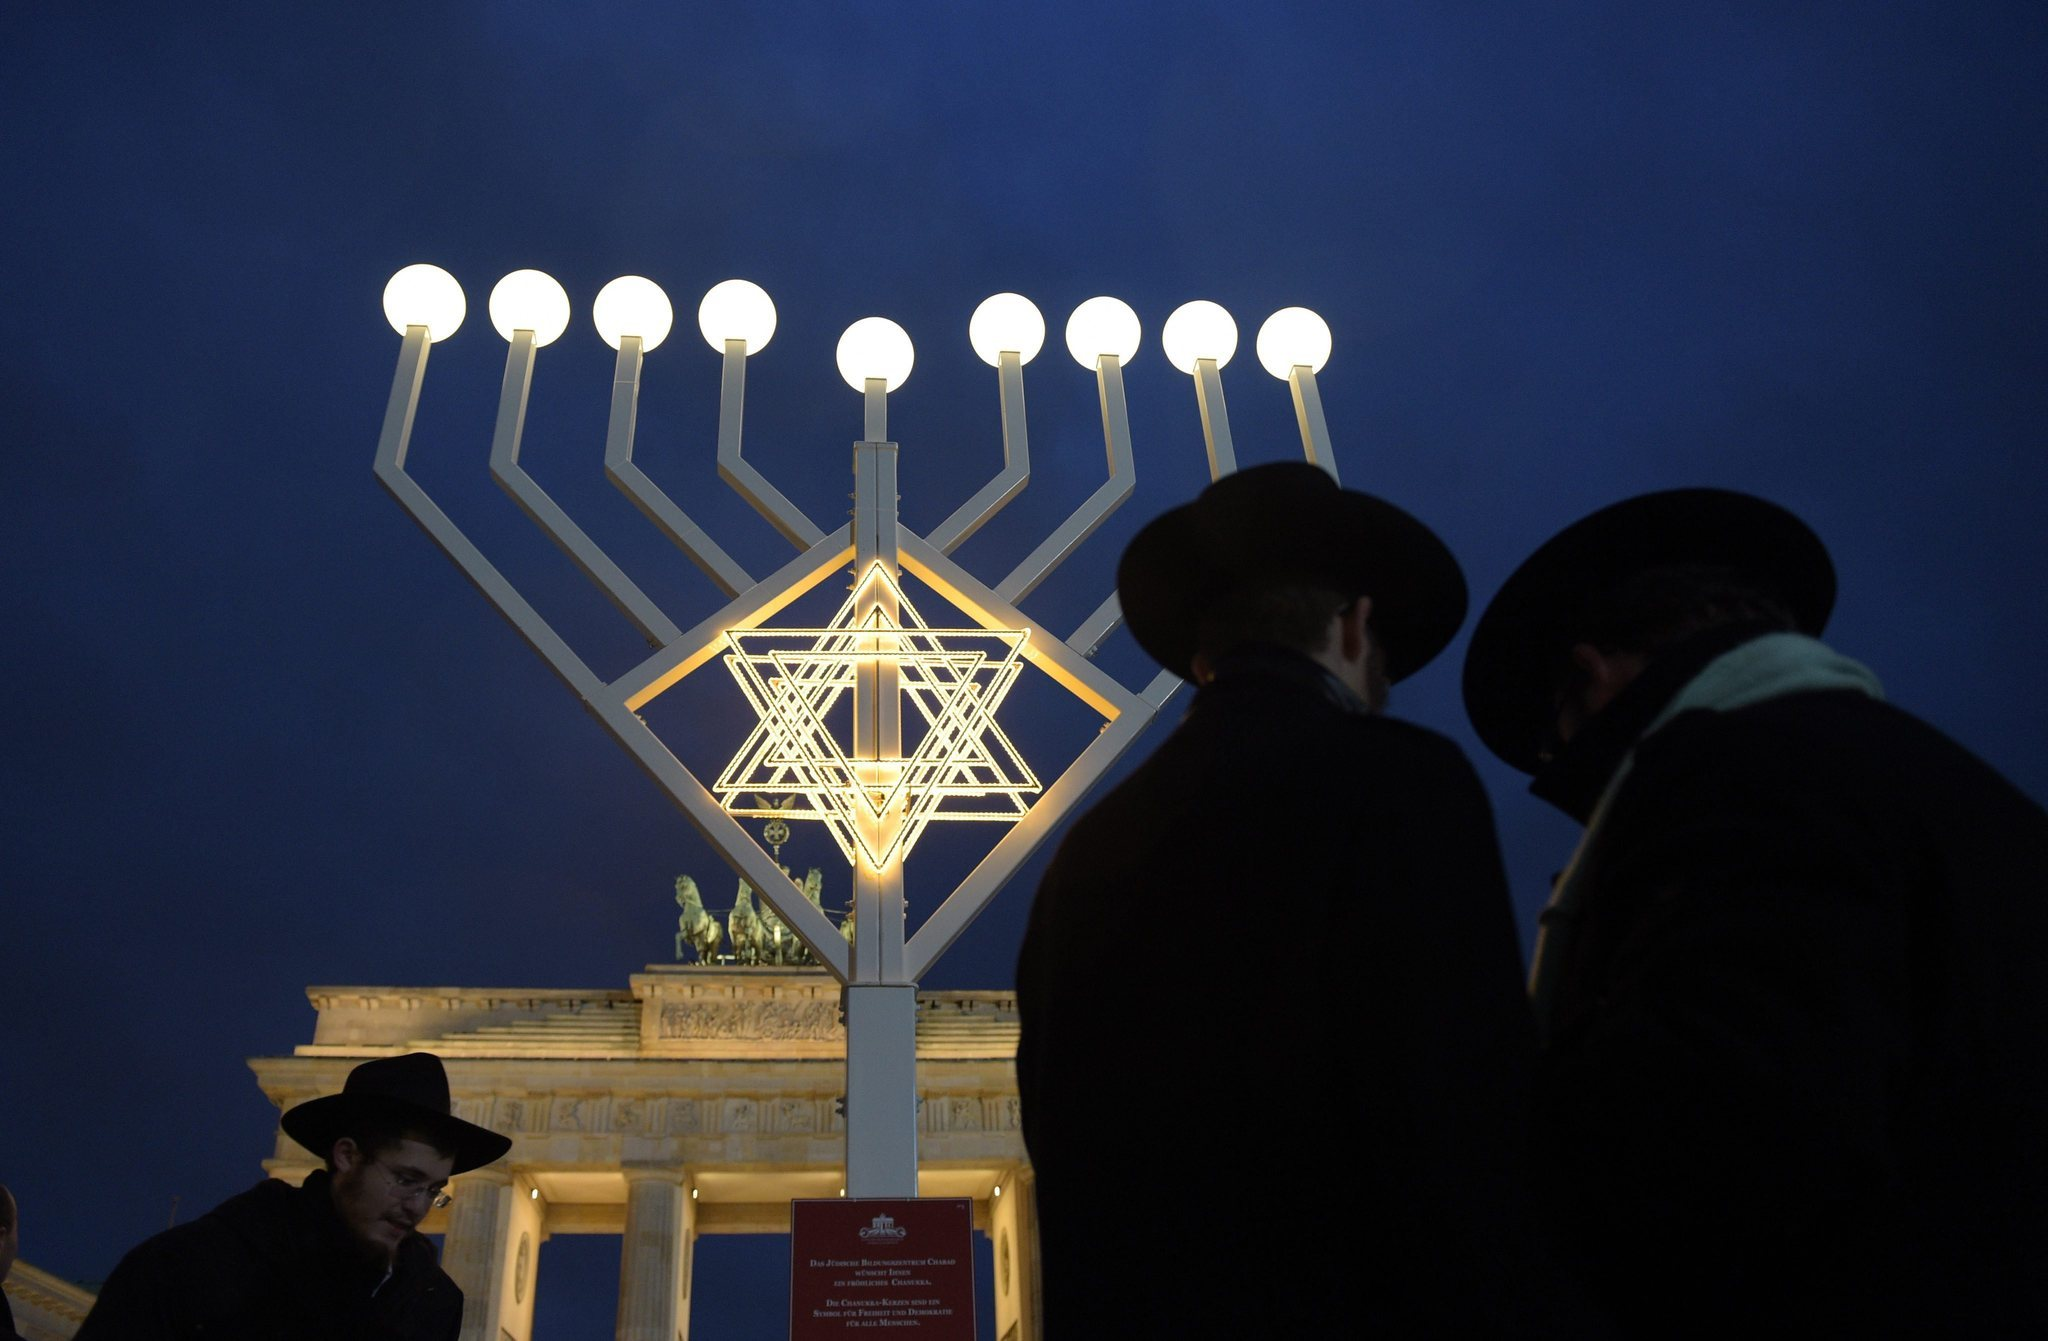 5 Myths About Hanukkah Chicago Tribune